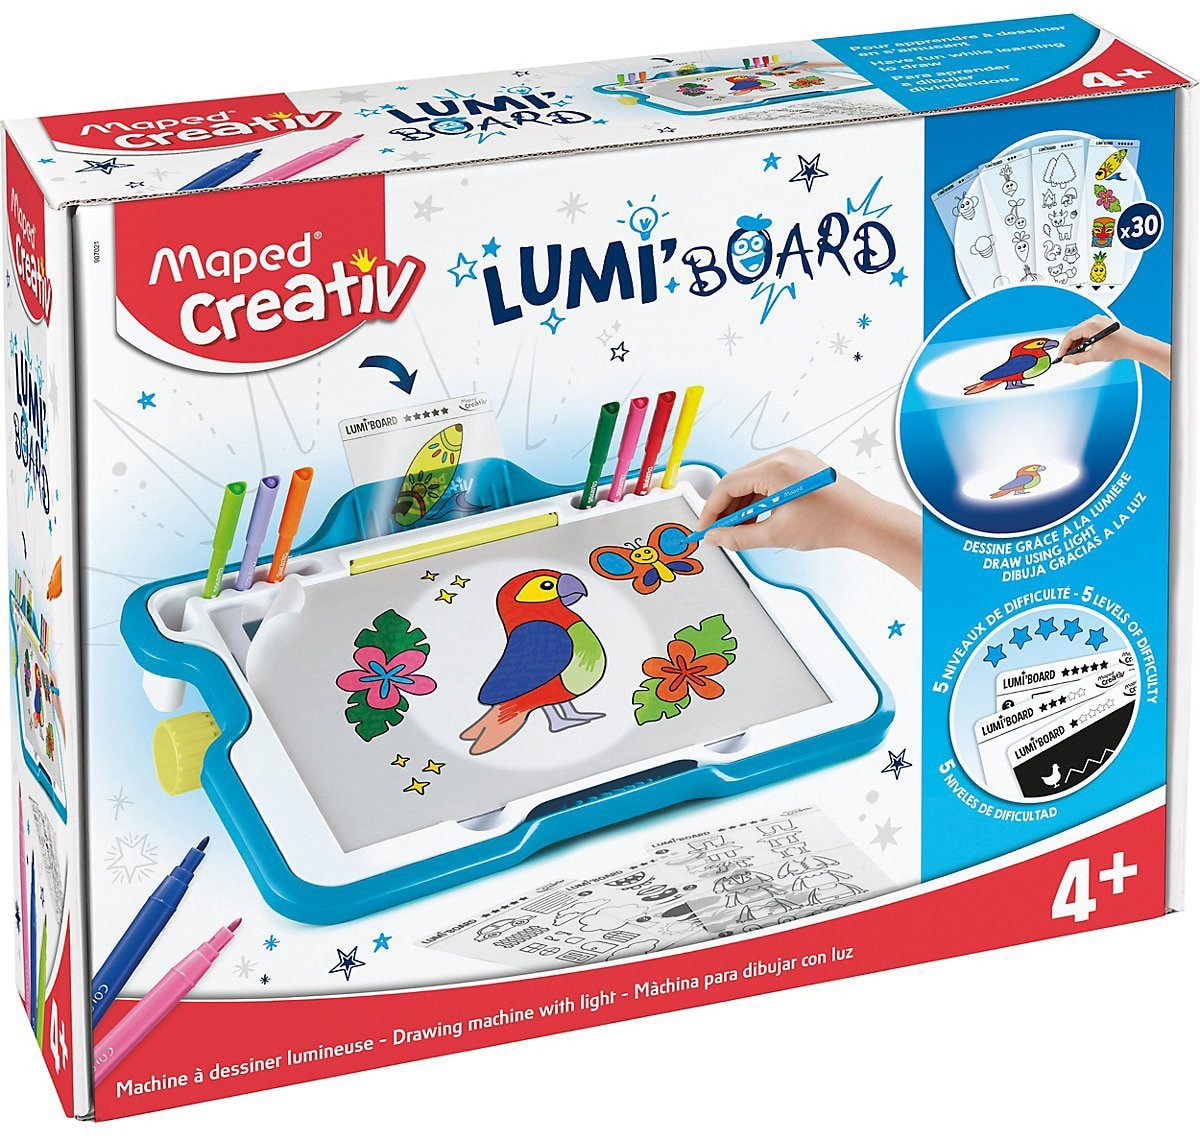 Maped Lumi Board Malvorlage